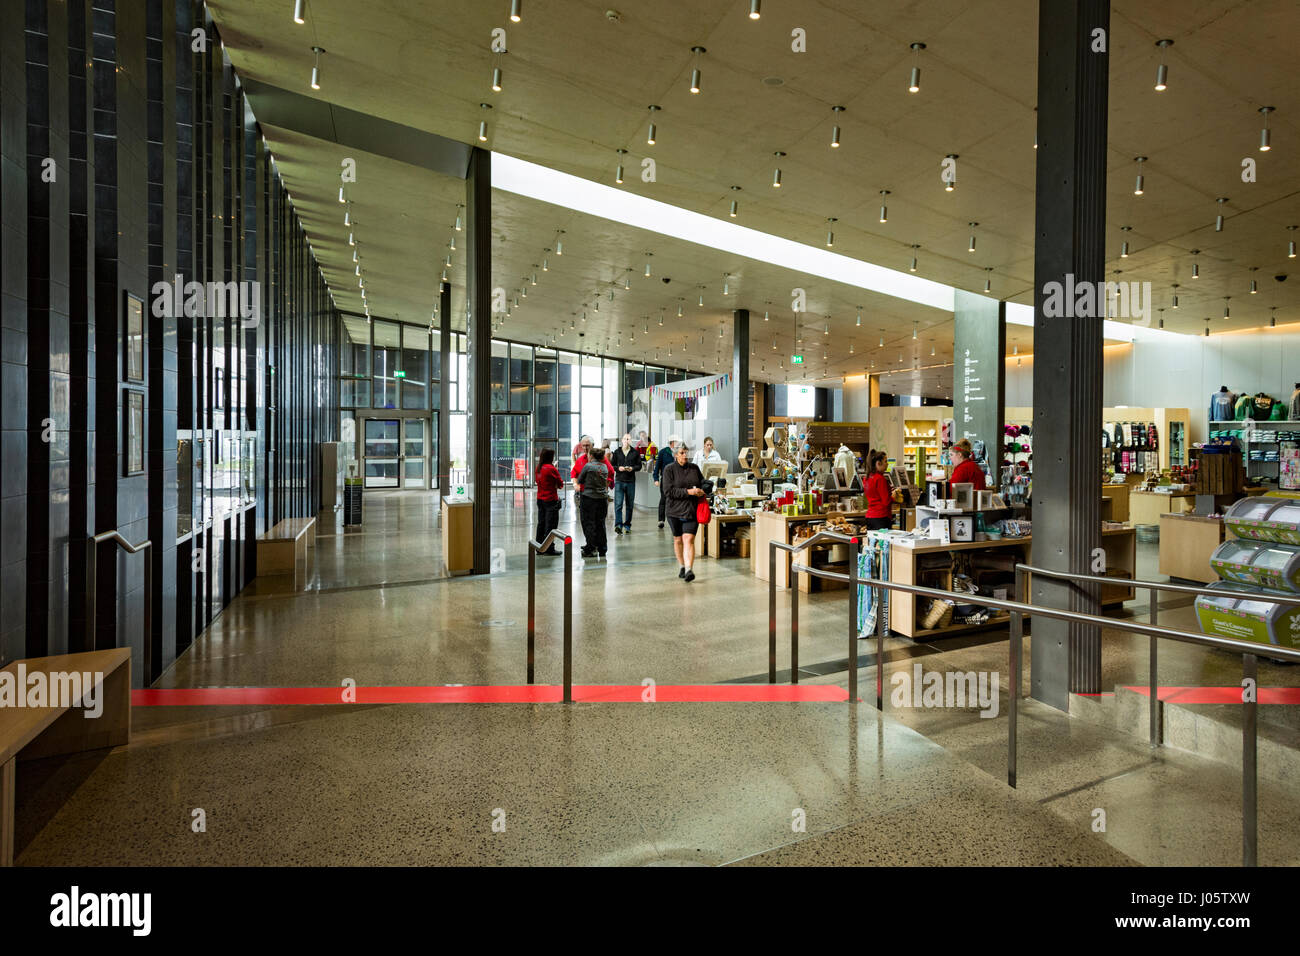 Inside the Visitor Centre, Giant's Causeway, Causeway Coast, County Antrim, Northern Ireland, UK - Stock Image